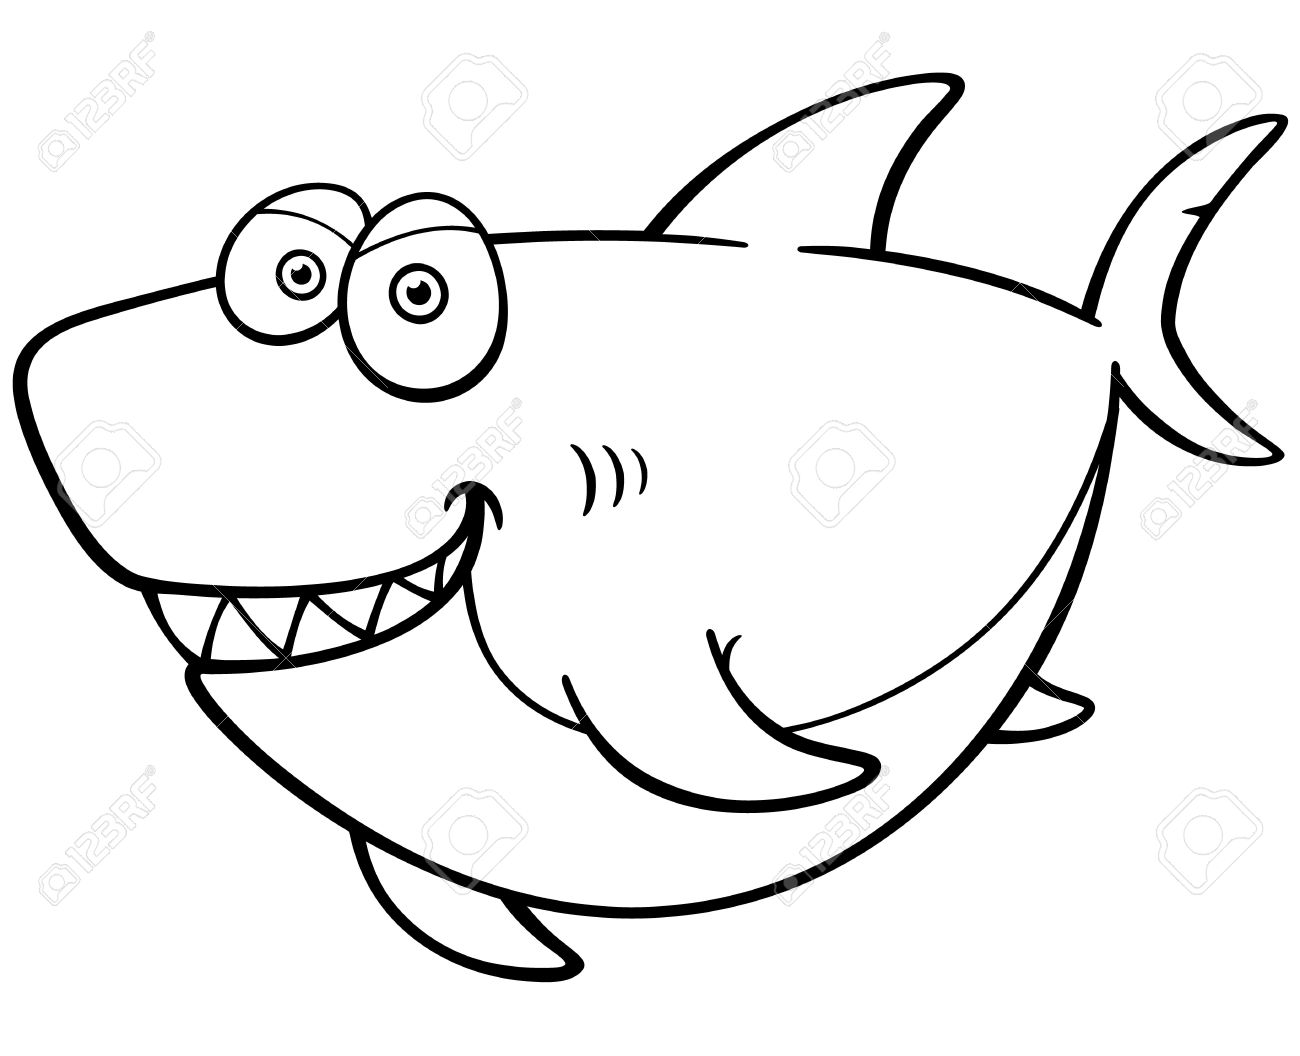 vector illustration of cartoon shark coloring book stock vector 30147761 - Shark Coloring Book